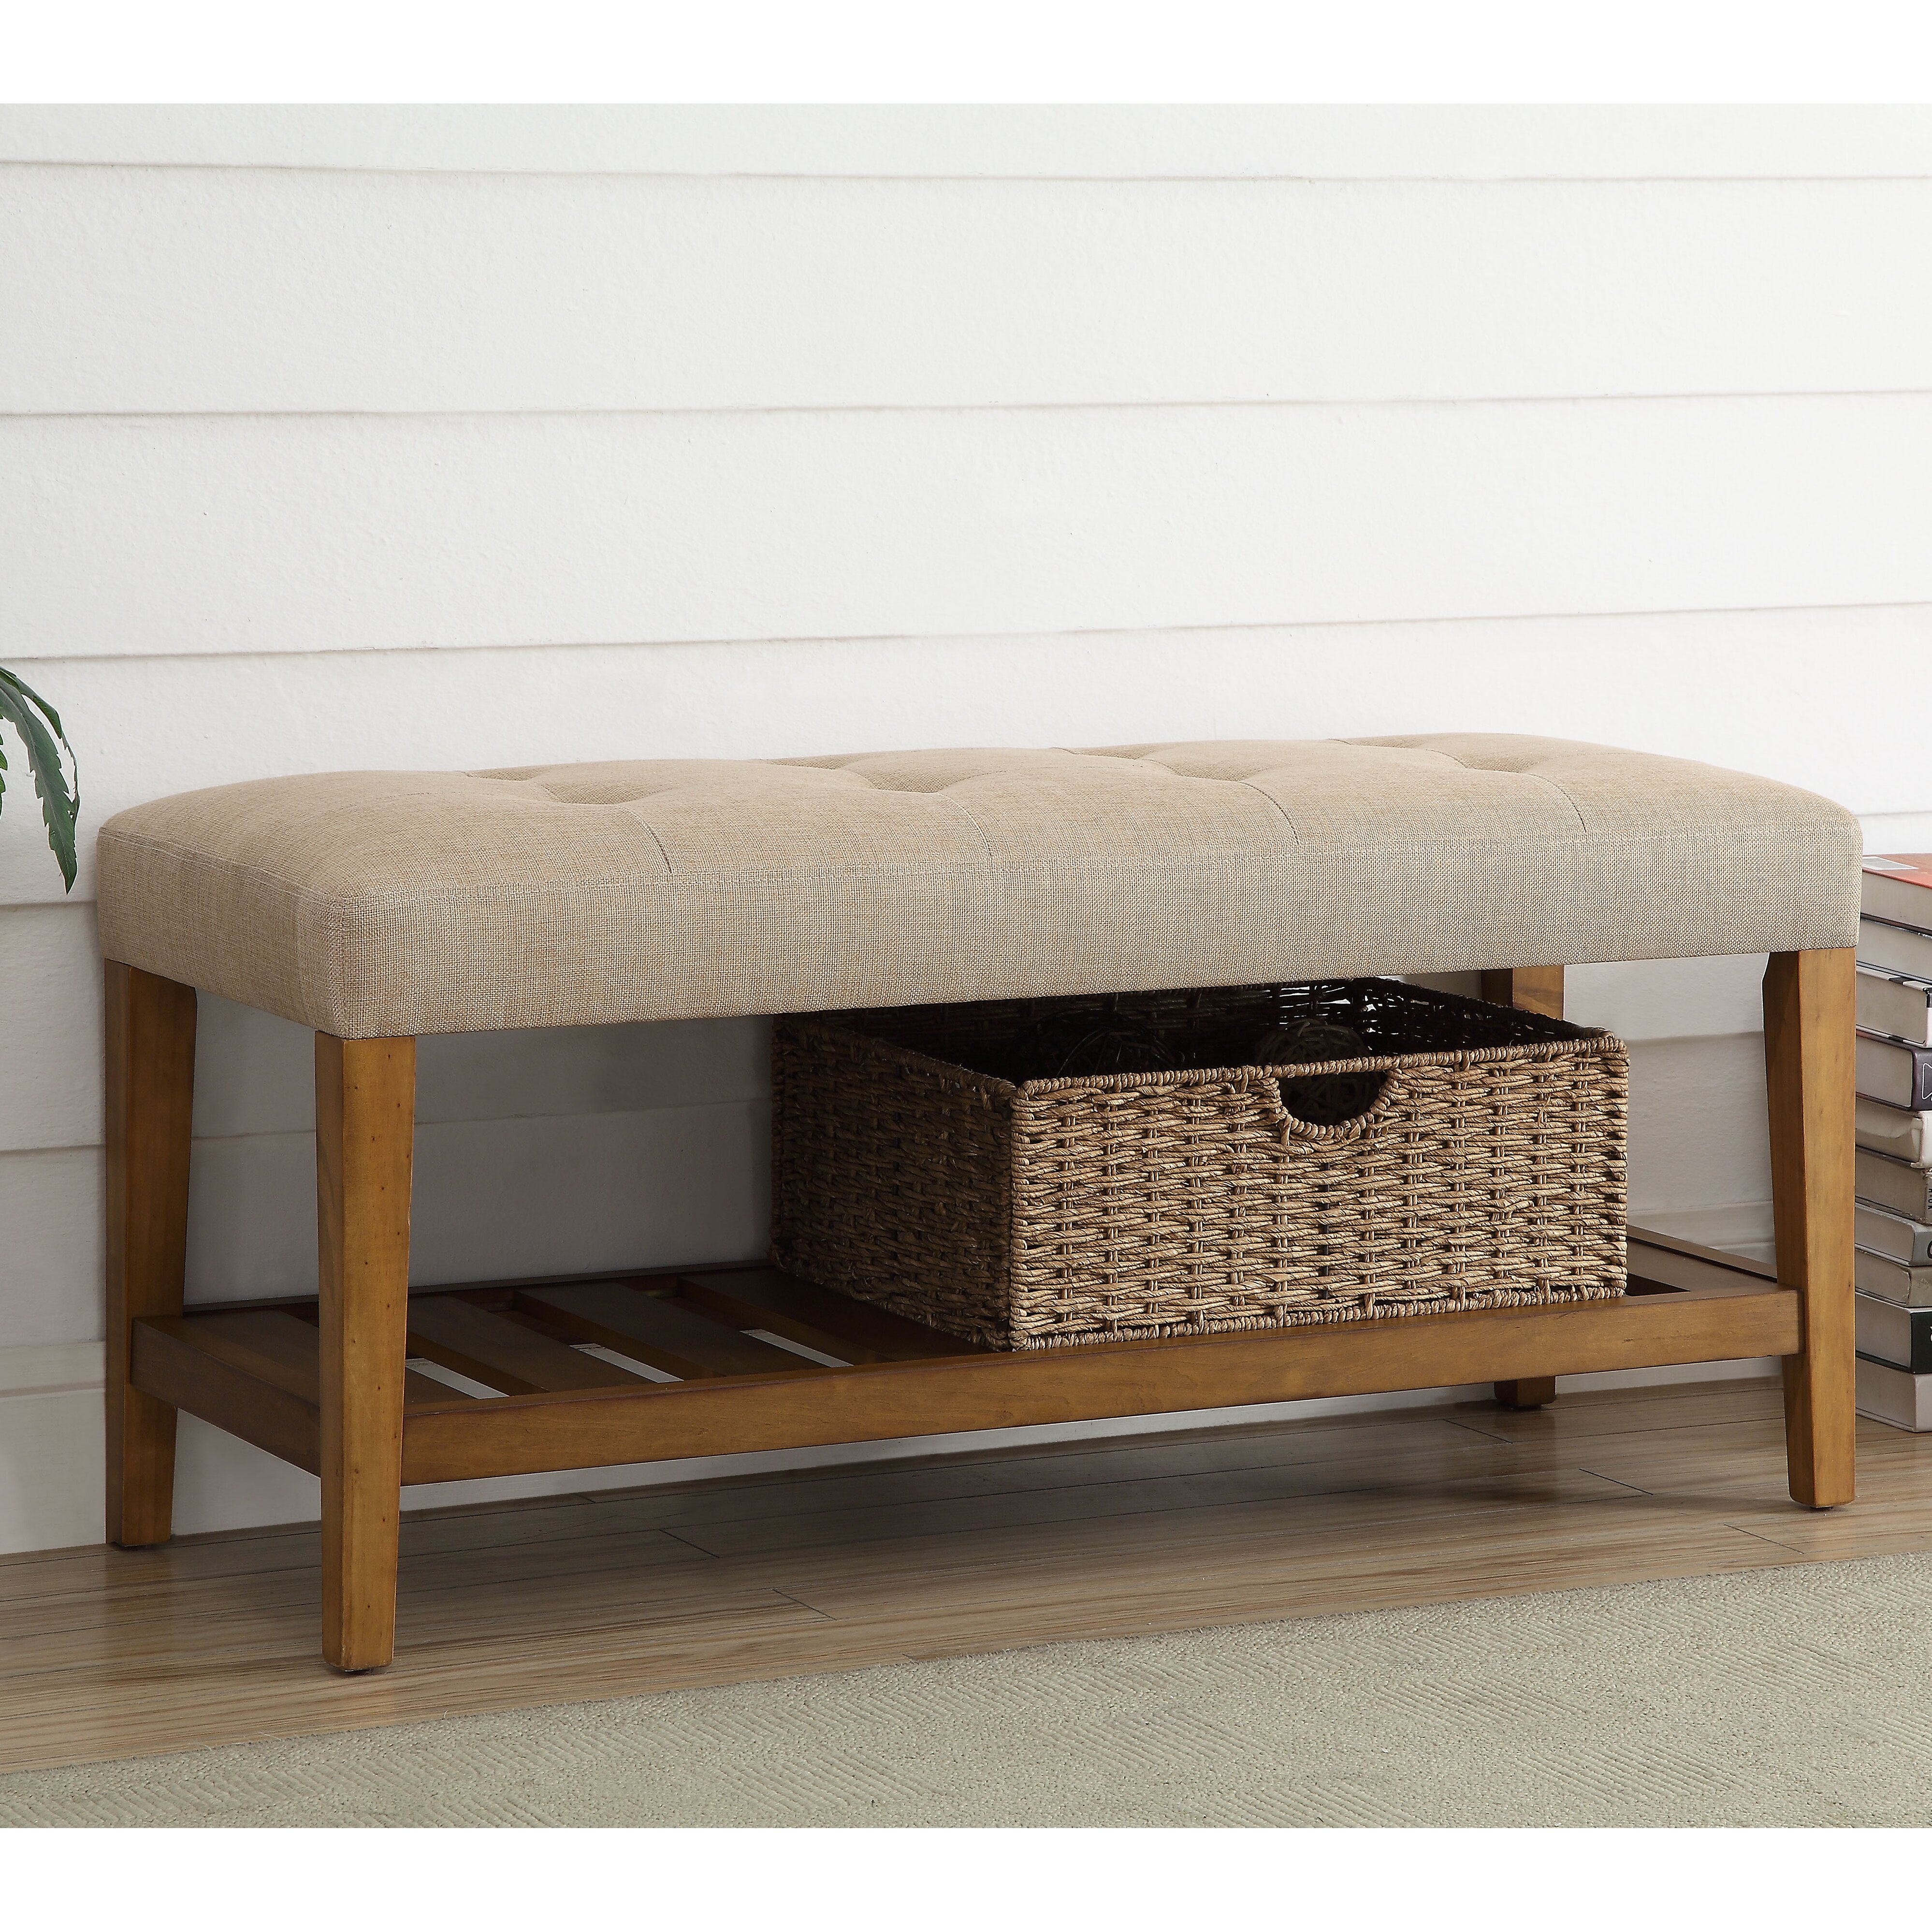 ACME Furniture Charla Upholstered Entryway Bench & Reviews